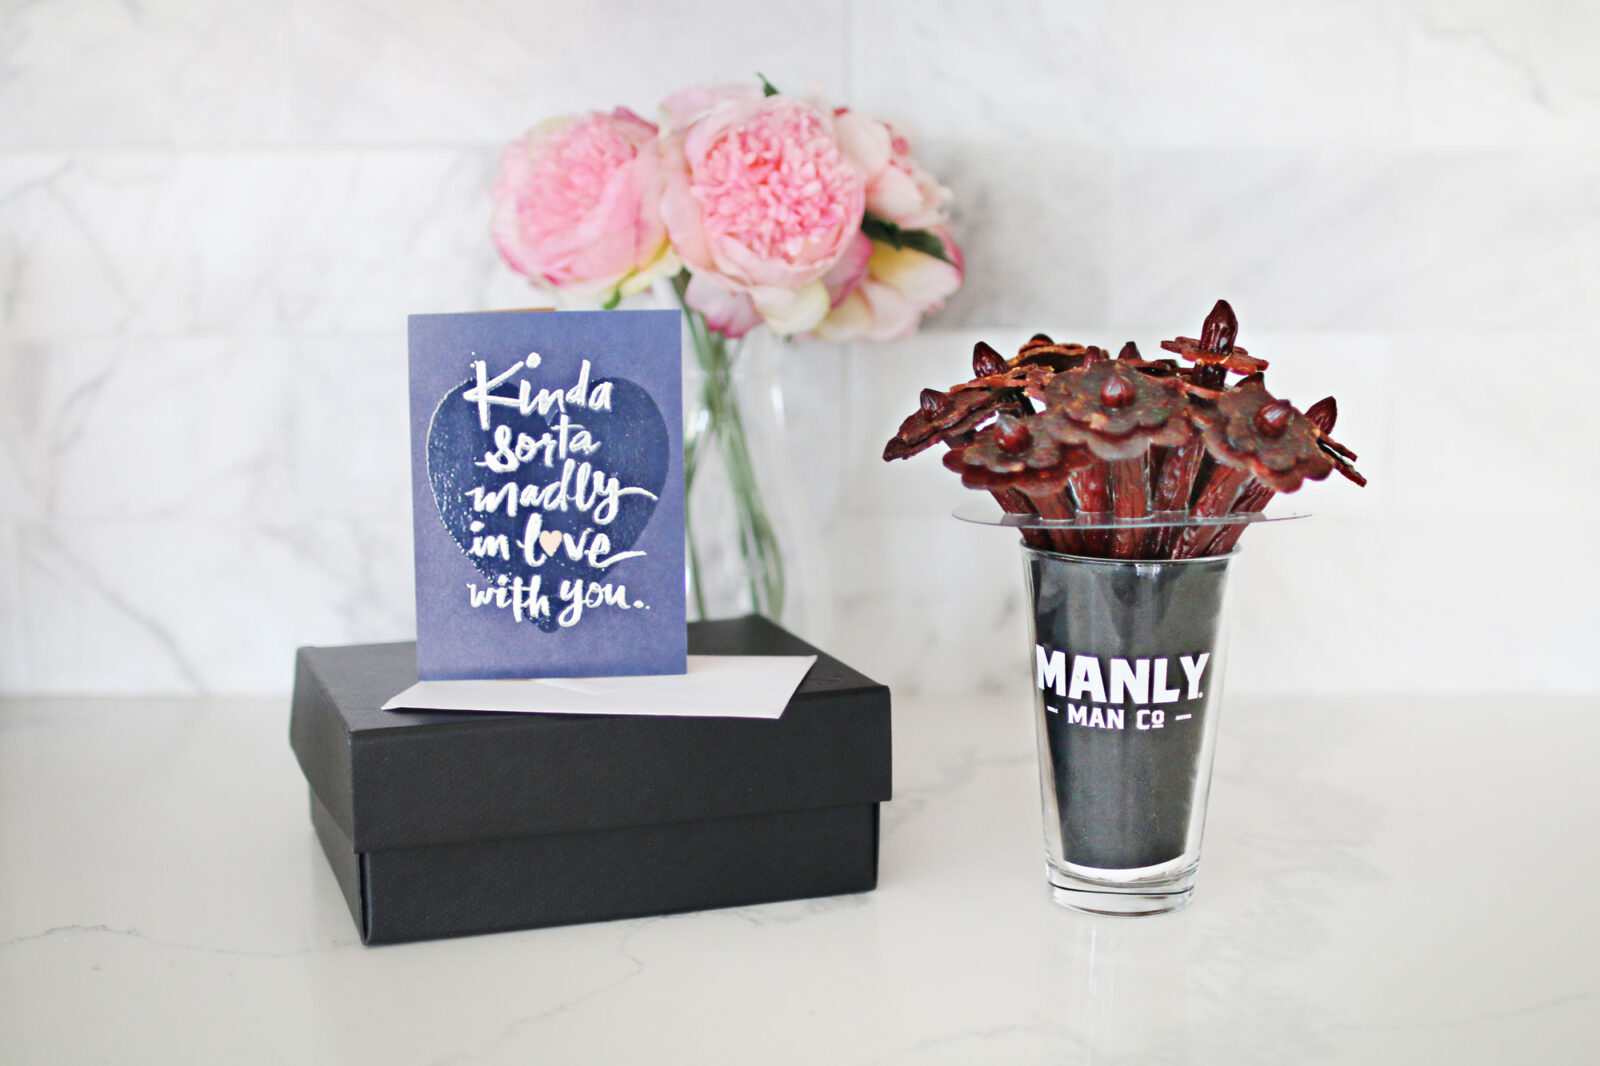 Manly Man Co Beef Jerky Bouquet